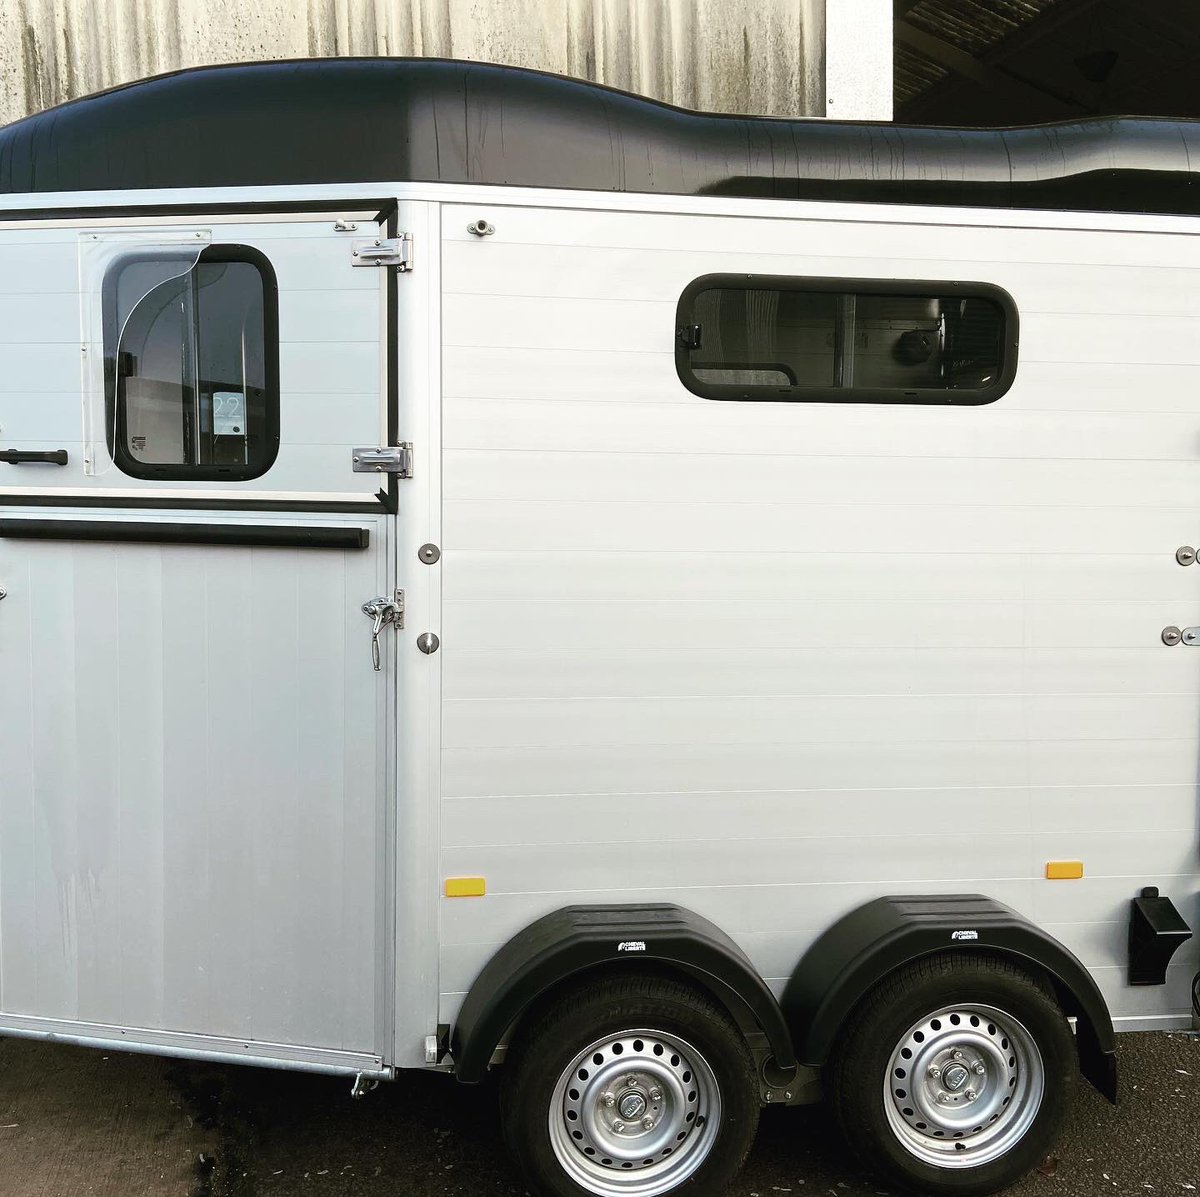 We are Cheval Liberte main Dealers and have a fantastic 1 yr old Cheval Liberte Touring Country with Tack Room at a saving of £1000 off new! Fully serviced. Call 07500 810523 #chevalliberte #horsetrailer #doublehorsetrailer #equestrian #ponyclub #equestrian #dressage #eventingpic.twitter.com/wpUtDyKIHY